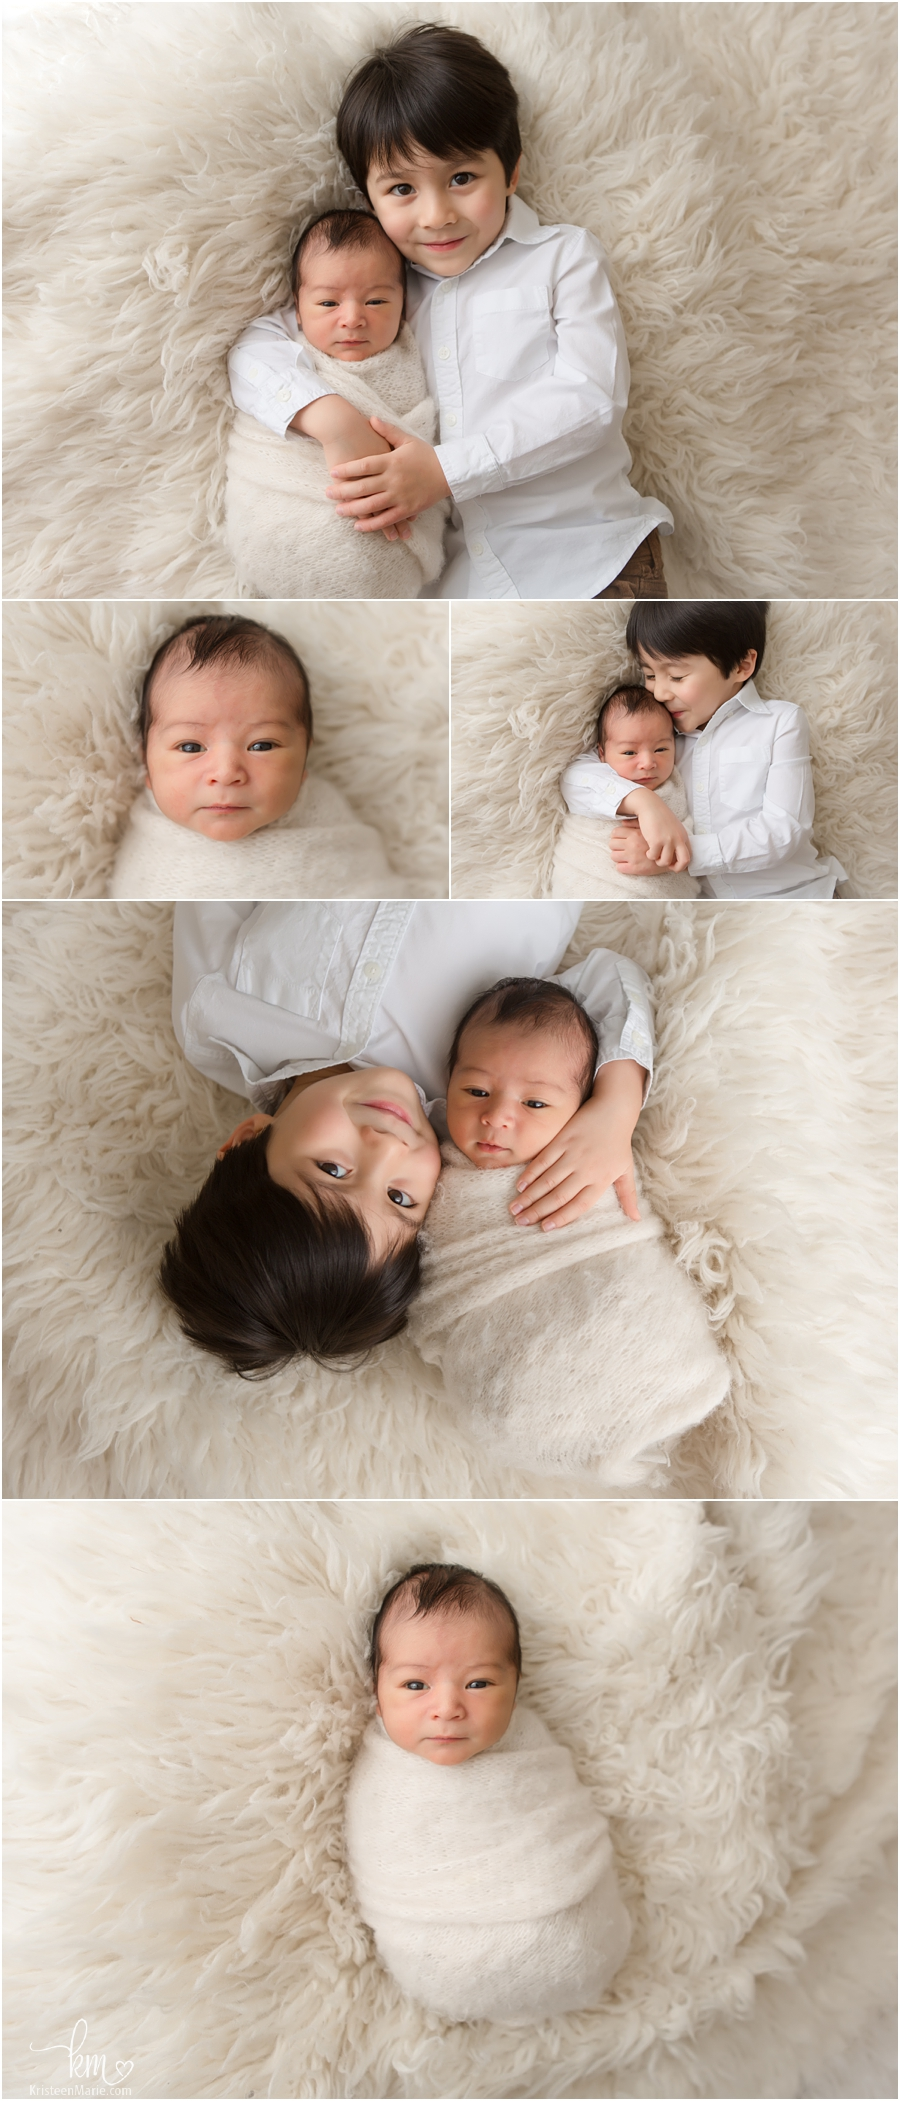 Asian siblings - Indianapolis newborn photography - two brothers - newborn and 4 year old